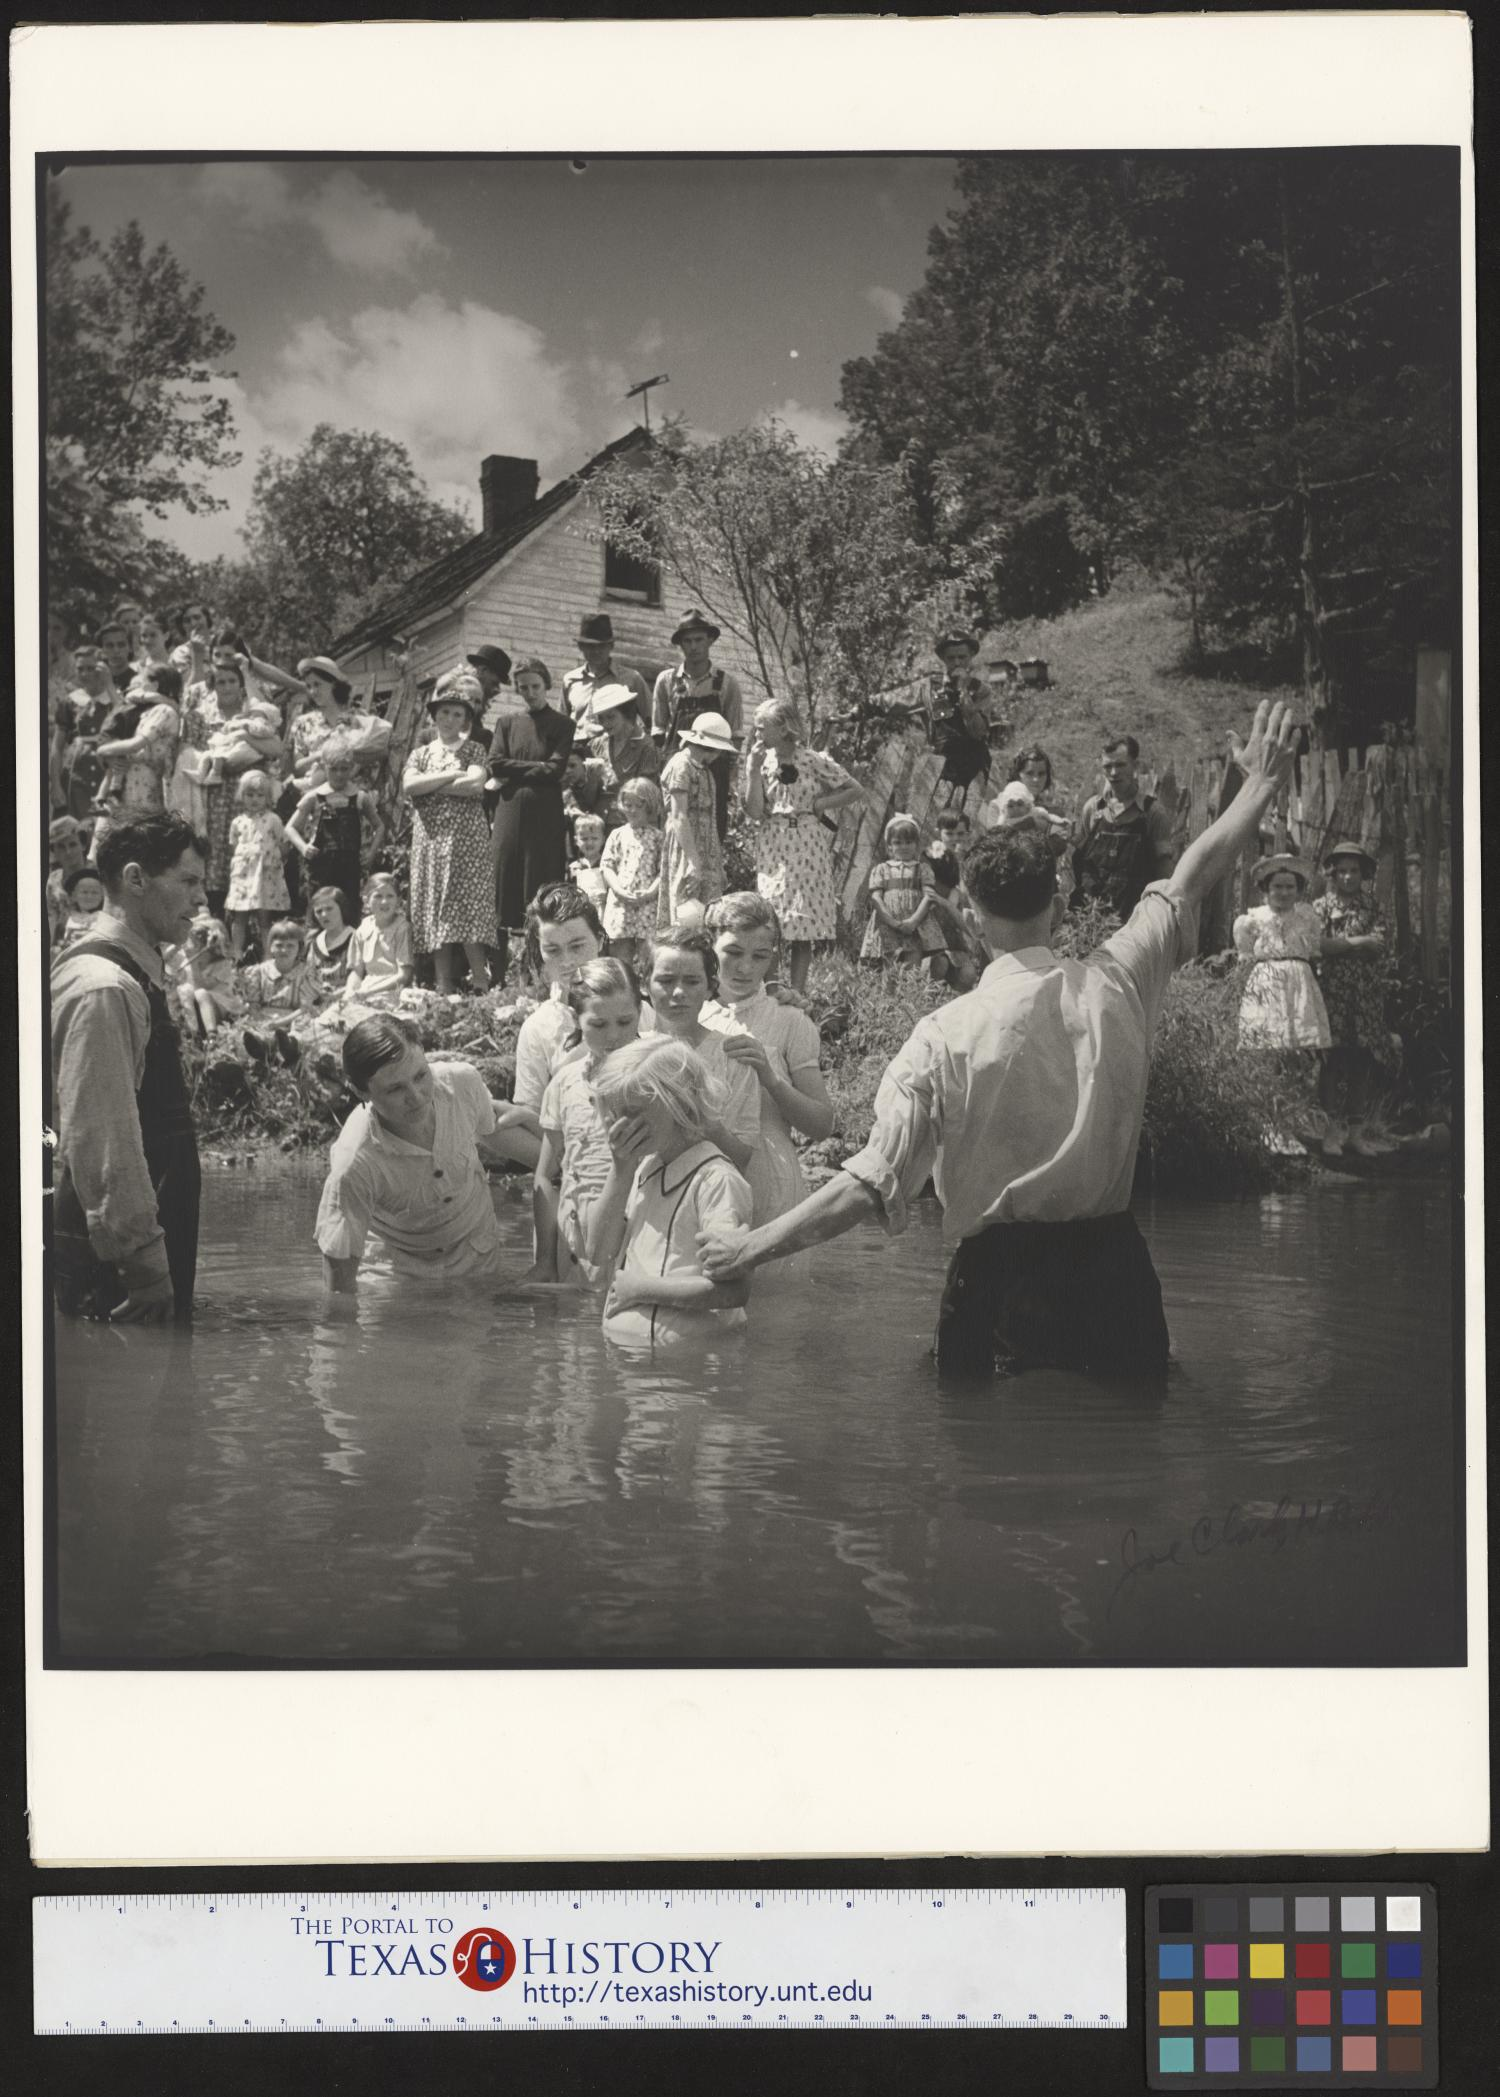 [Baptising in Olde Towne Creek (1)], Photograph of Reverend Hugh Vancel performing a baptism in Olde Town Creek near Red Hill, Tennessee. The reverend is standing in the creek and facing a large crowd of people on the bank, and holding the arm of a young girl standing next to him; several other girls, a woman and a man are also standing in the creek, on the left. A building with wood siding is visible in the background.,